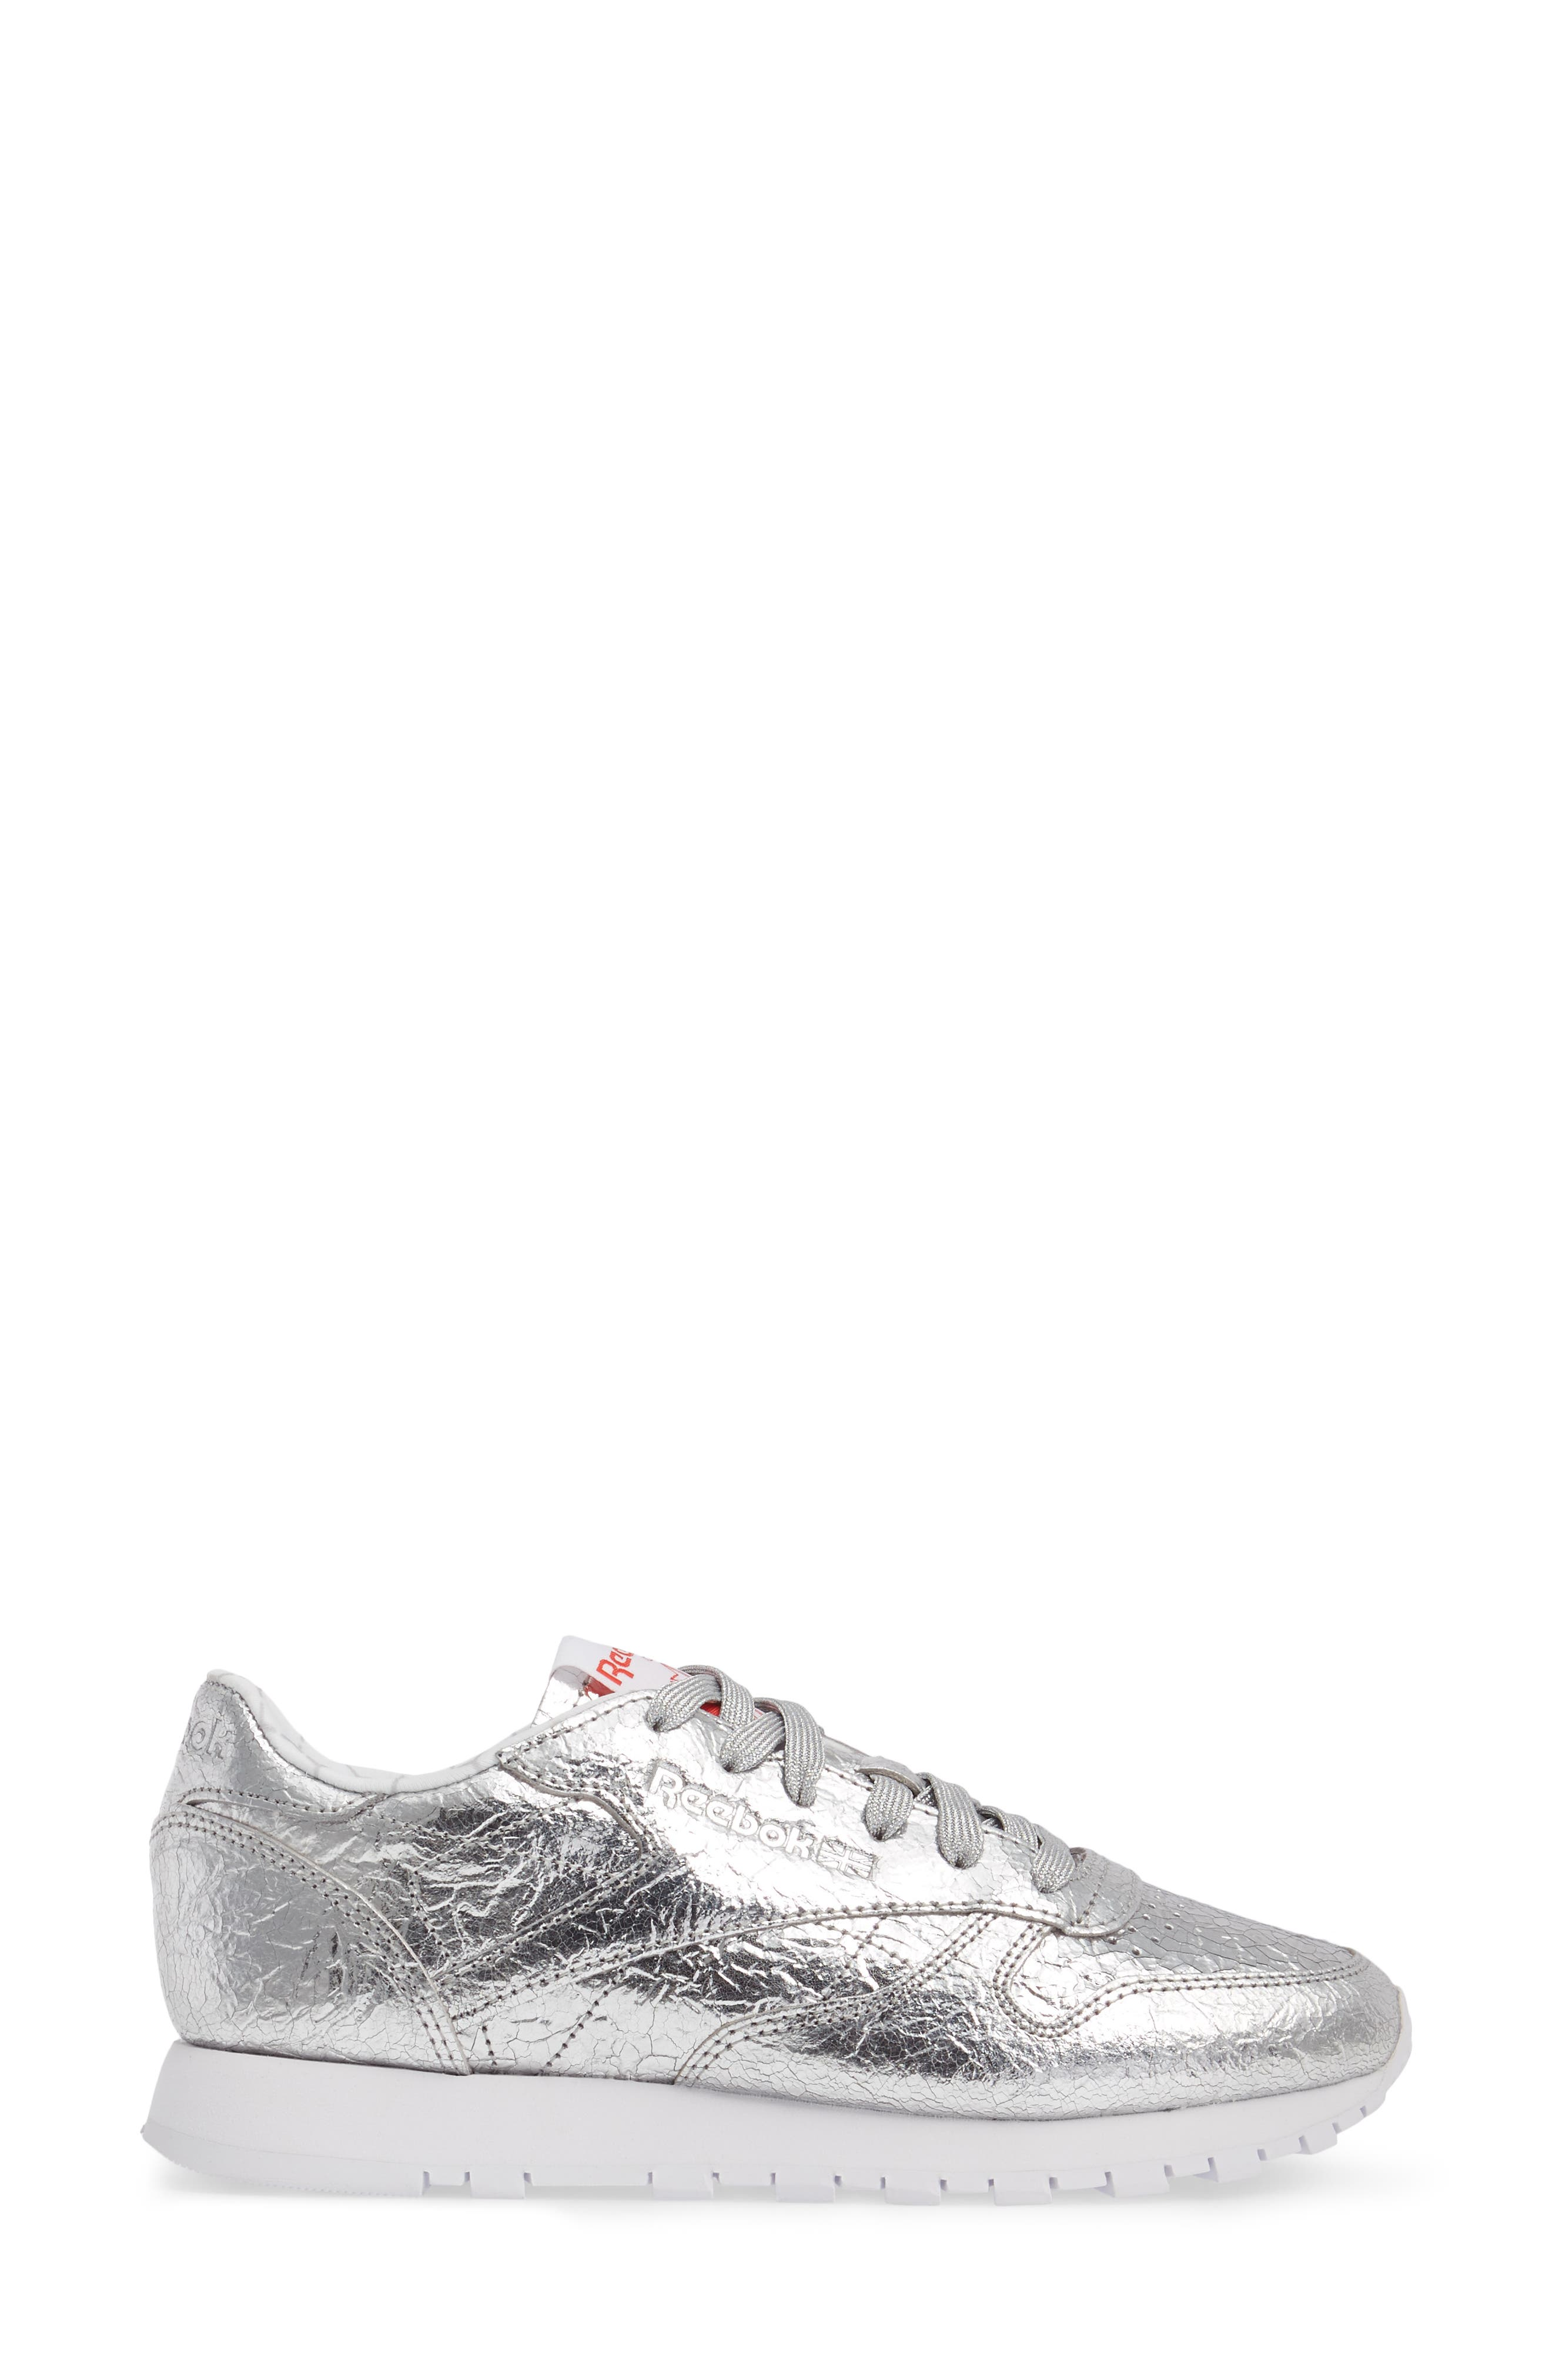 Classic Leather HD Foil Sneaker,                             Alternate thumbnail 3, color,                             Silver/ Grey/ Red/ White